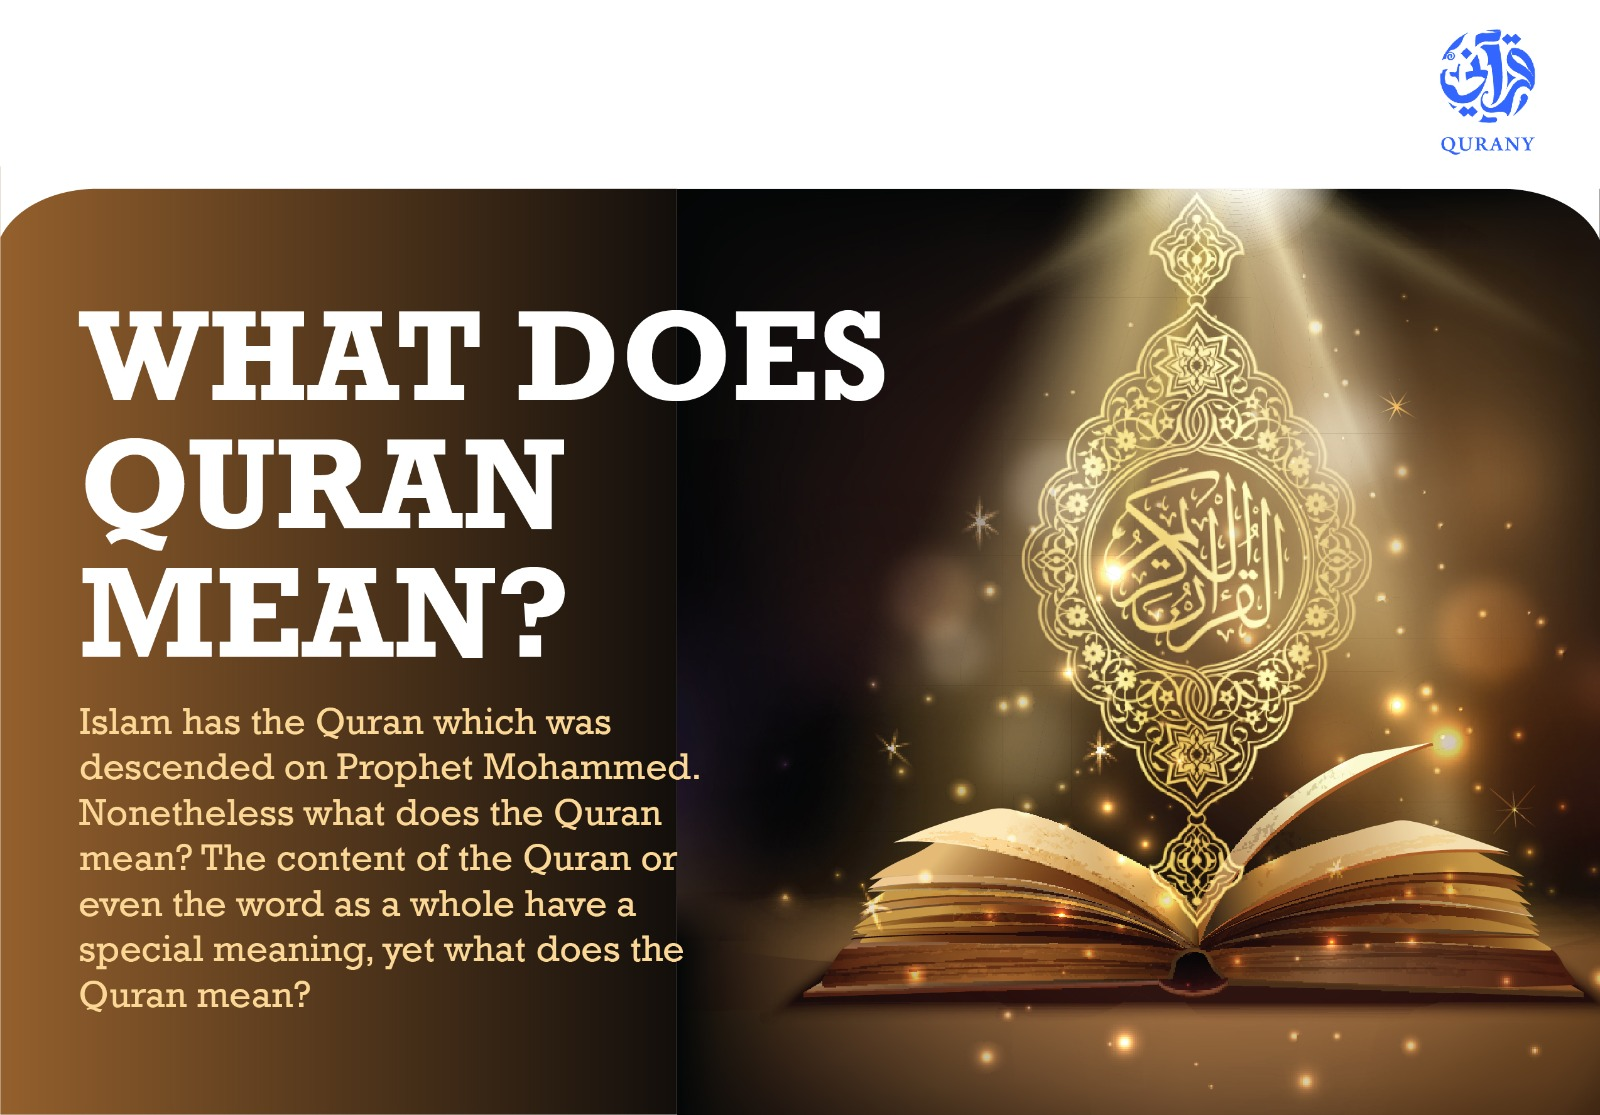 What does the Quran mean